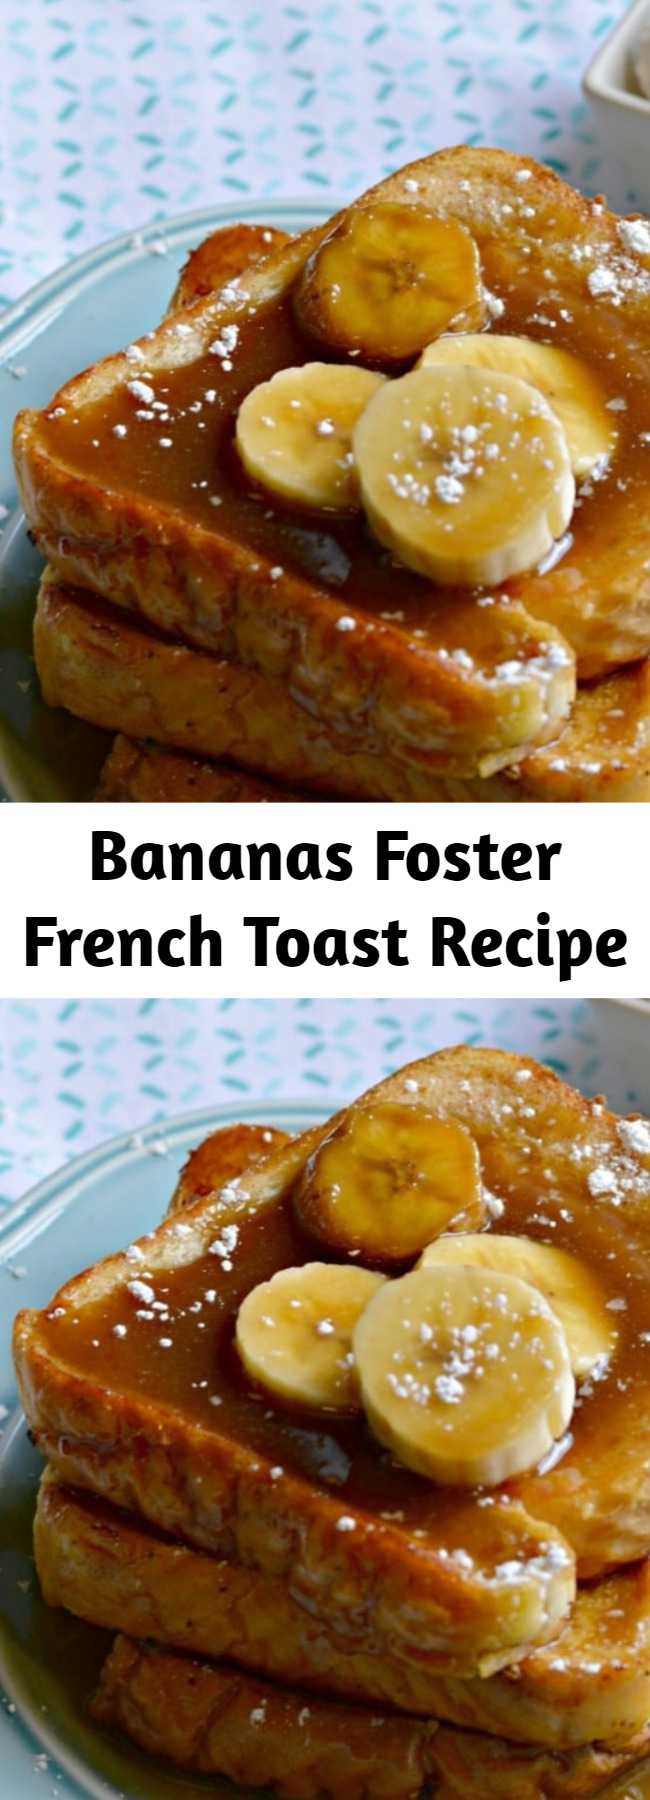 Bananas Foster French Toast Recipe - Bananas Foster French Toast is a perfect recipe for any occasion. The flavors are unbeatable and everyone will love it.